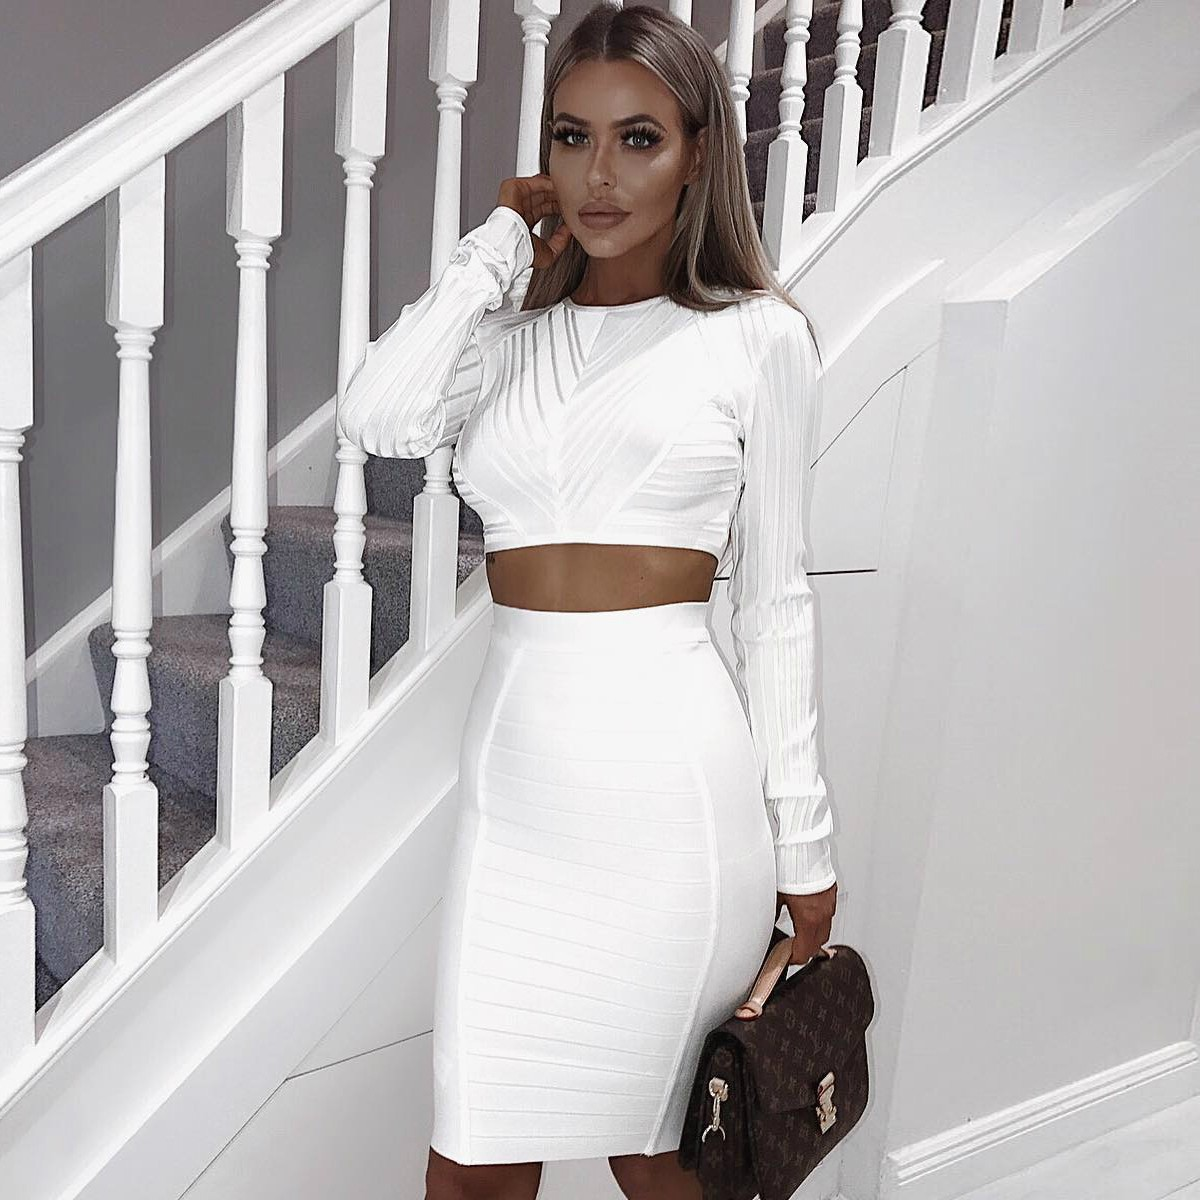 White Round Neck Long Sleeve 2 Piece Plain Simpleness High Quality Bandage Dress HK014-White